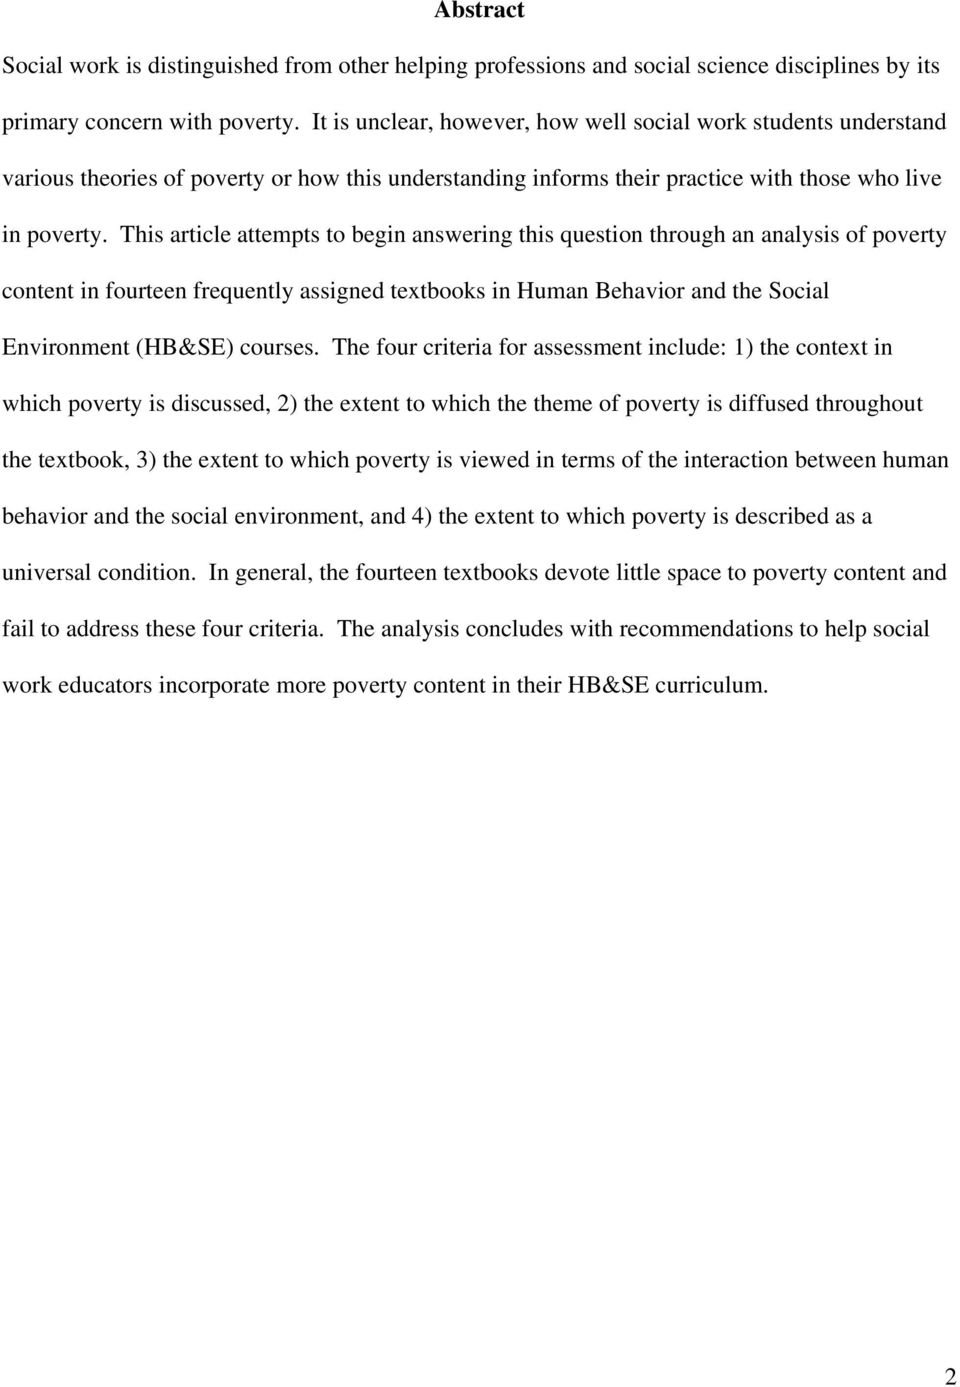 This article attempts to begin answering this question through an analysis of poverty content in fourteen frequently assigned textbooks in Human Behavior and the Social Environment (HB&SE) courses.